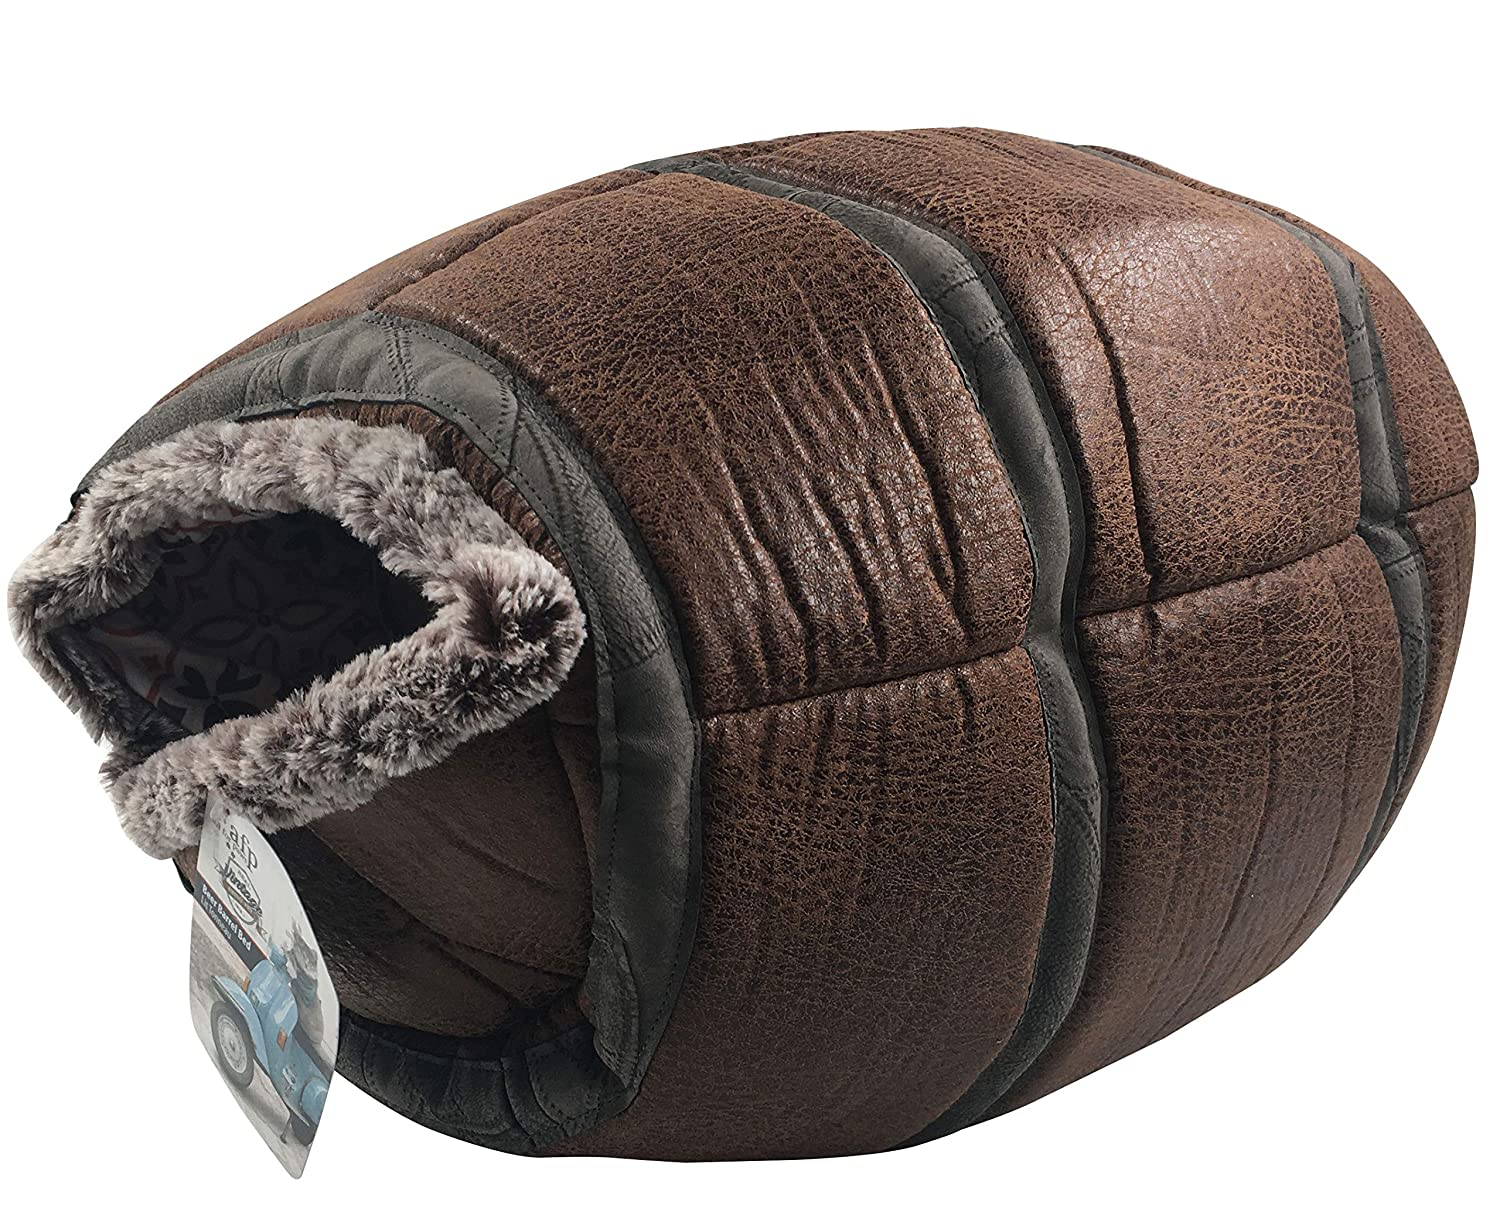 Brown AFP Cat Cave Indoor Pet Kitten Dog Plush Igloo Bed House Cushion Eco-Friendly Durable Non-Slip Warm, Brown